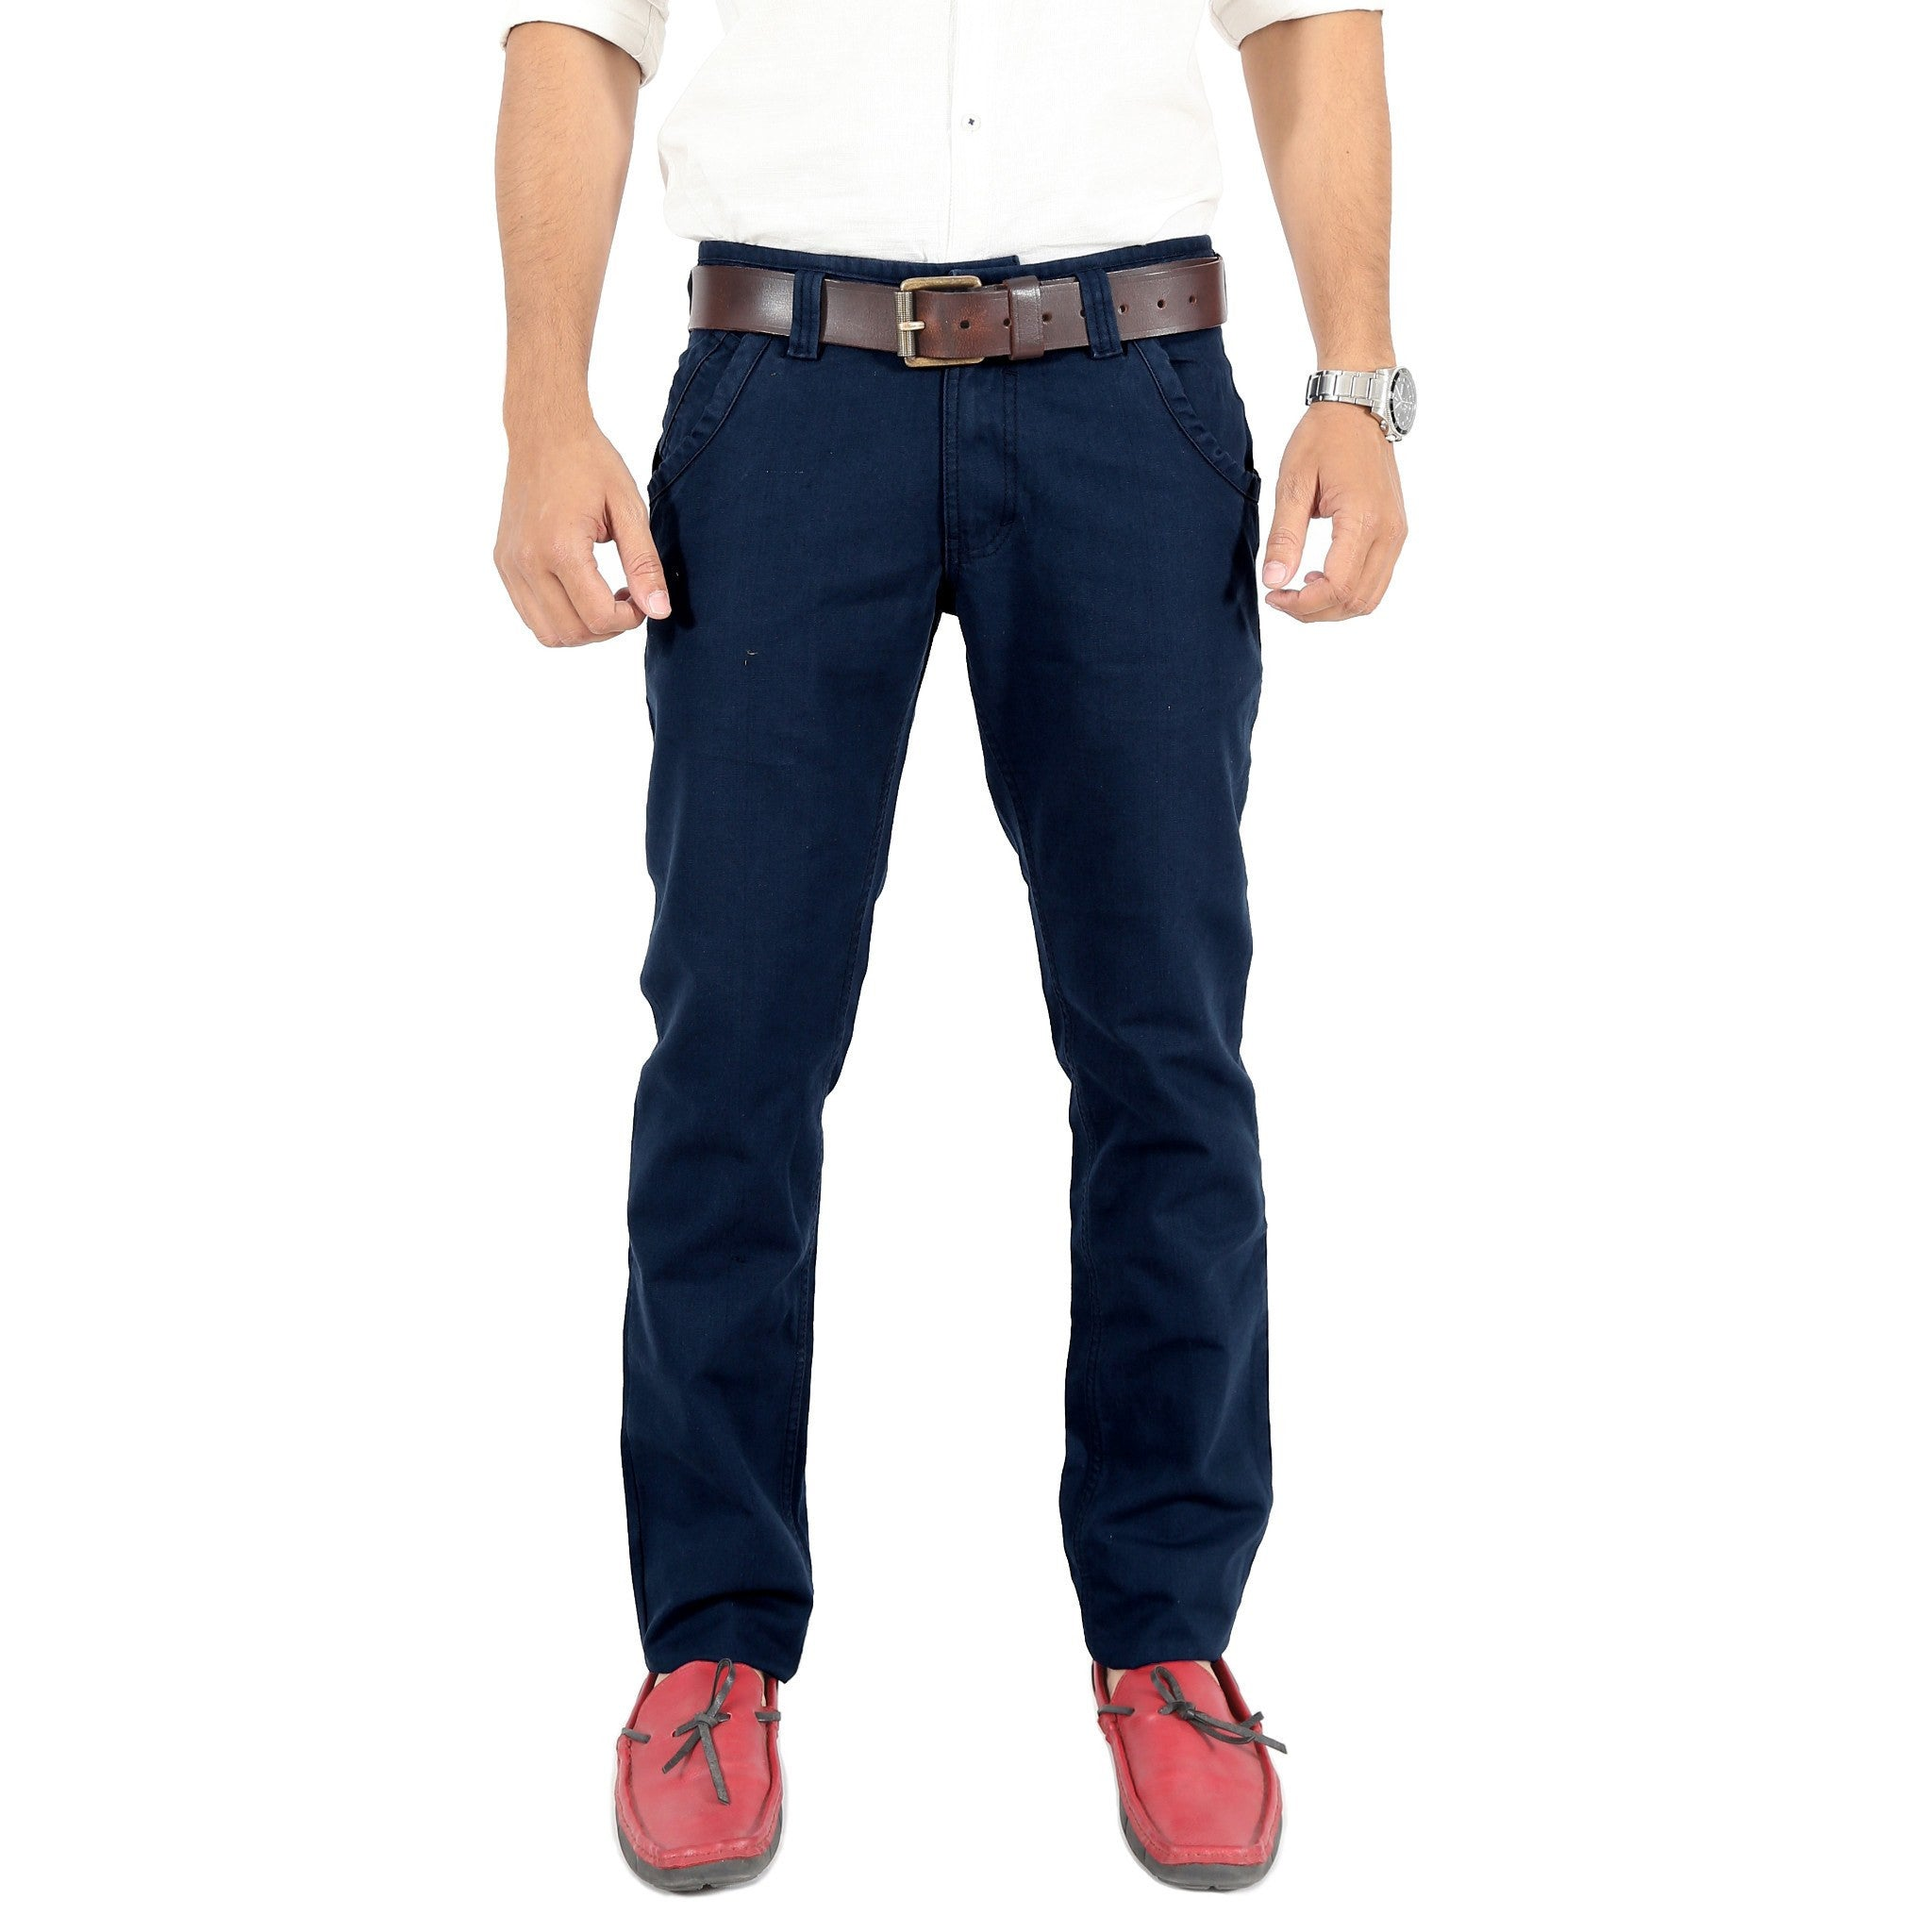 Uber Blacklue Trouser front view